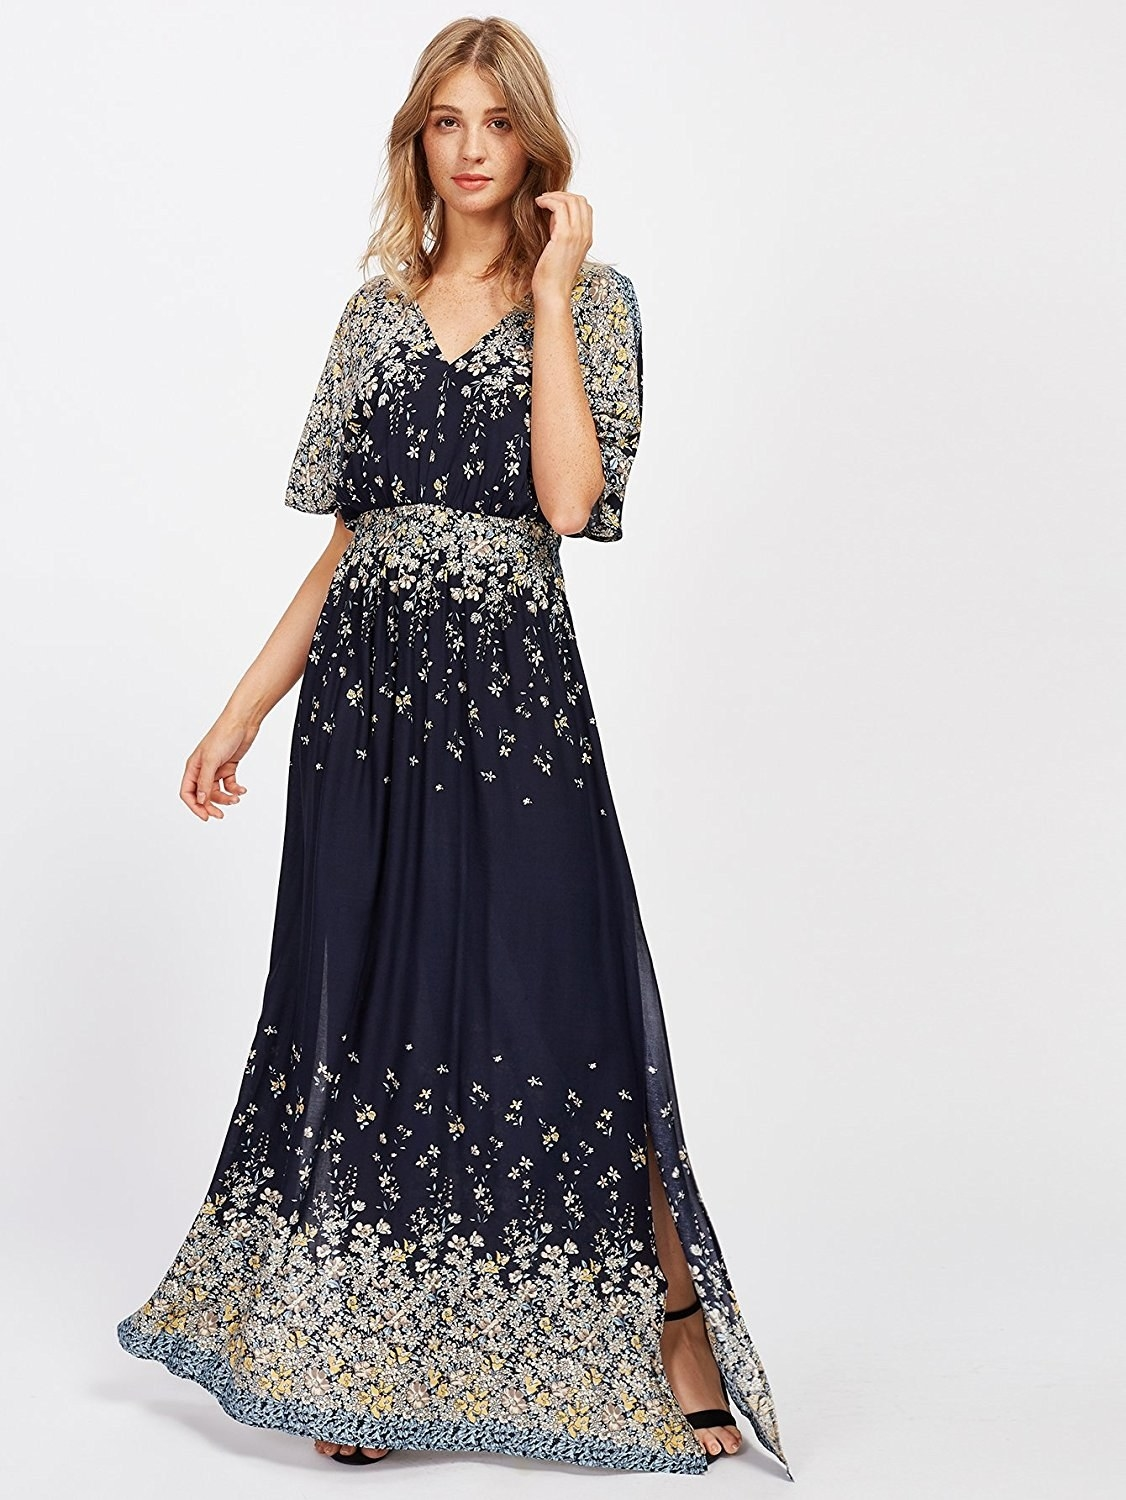 3710c1a0427 A flowy boho dress perfect for all your semi-formal events